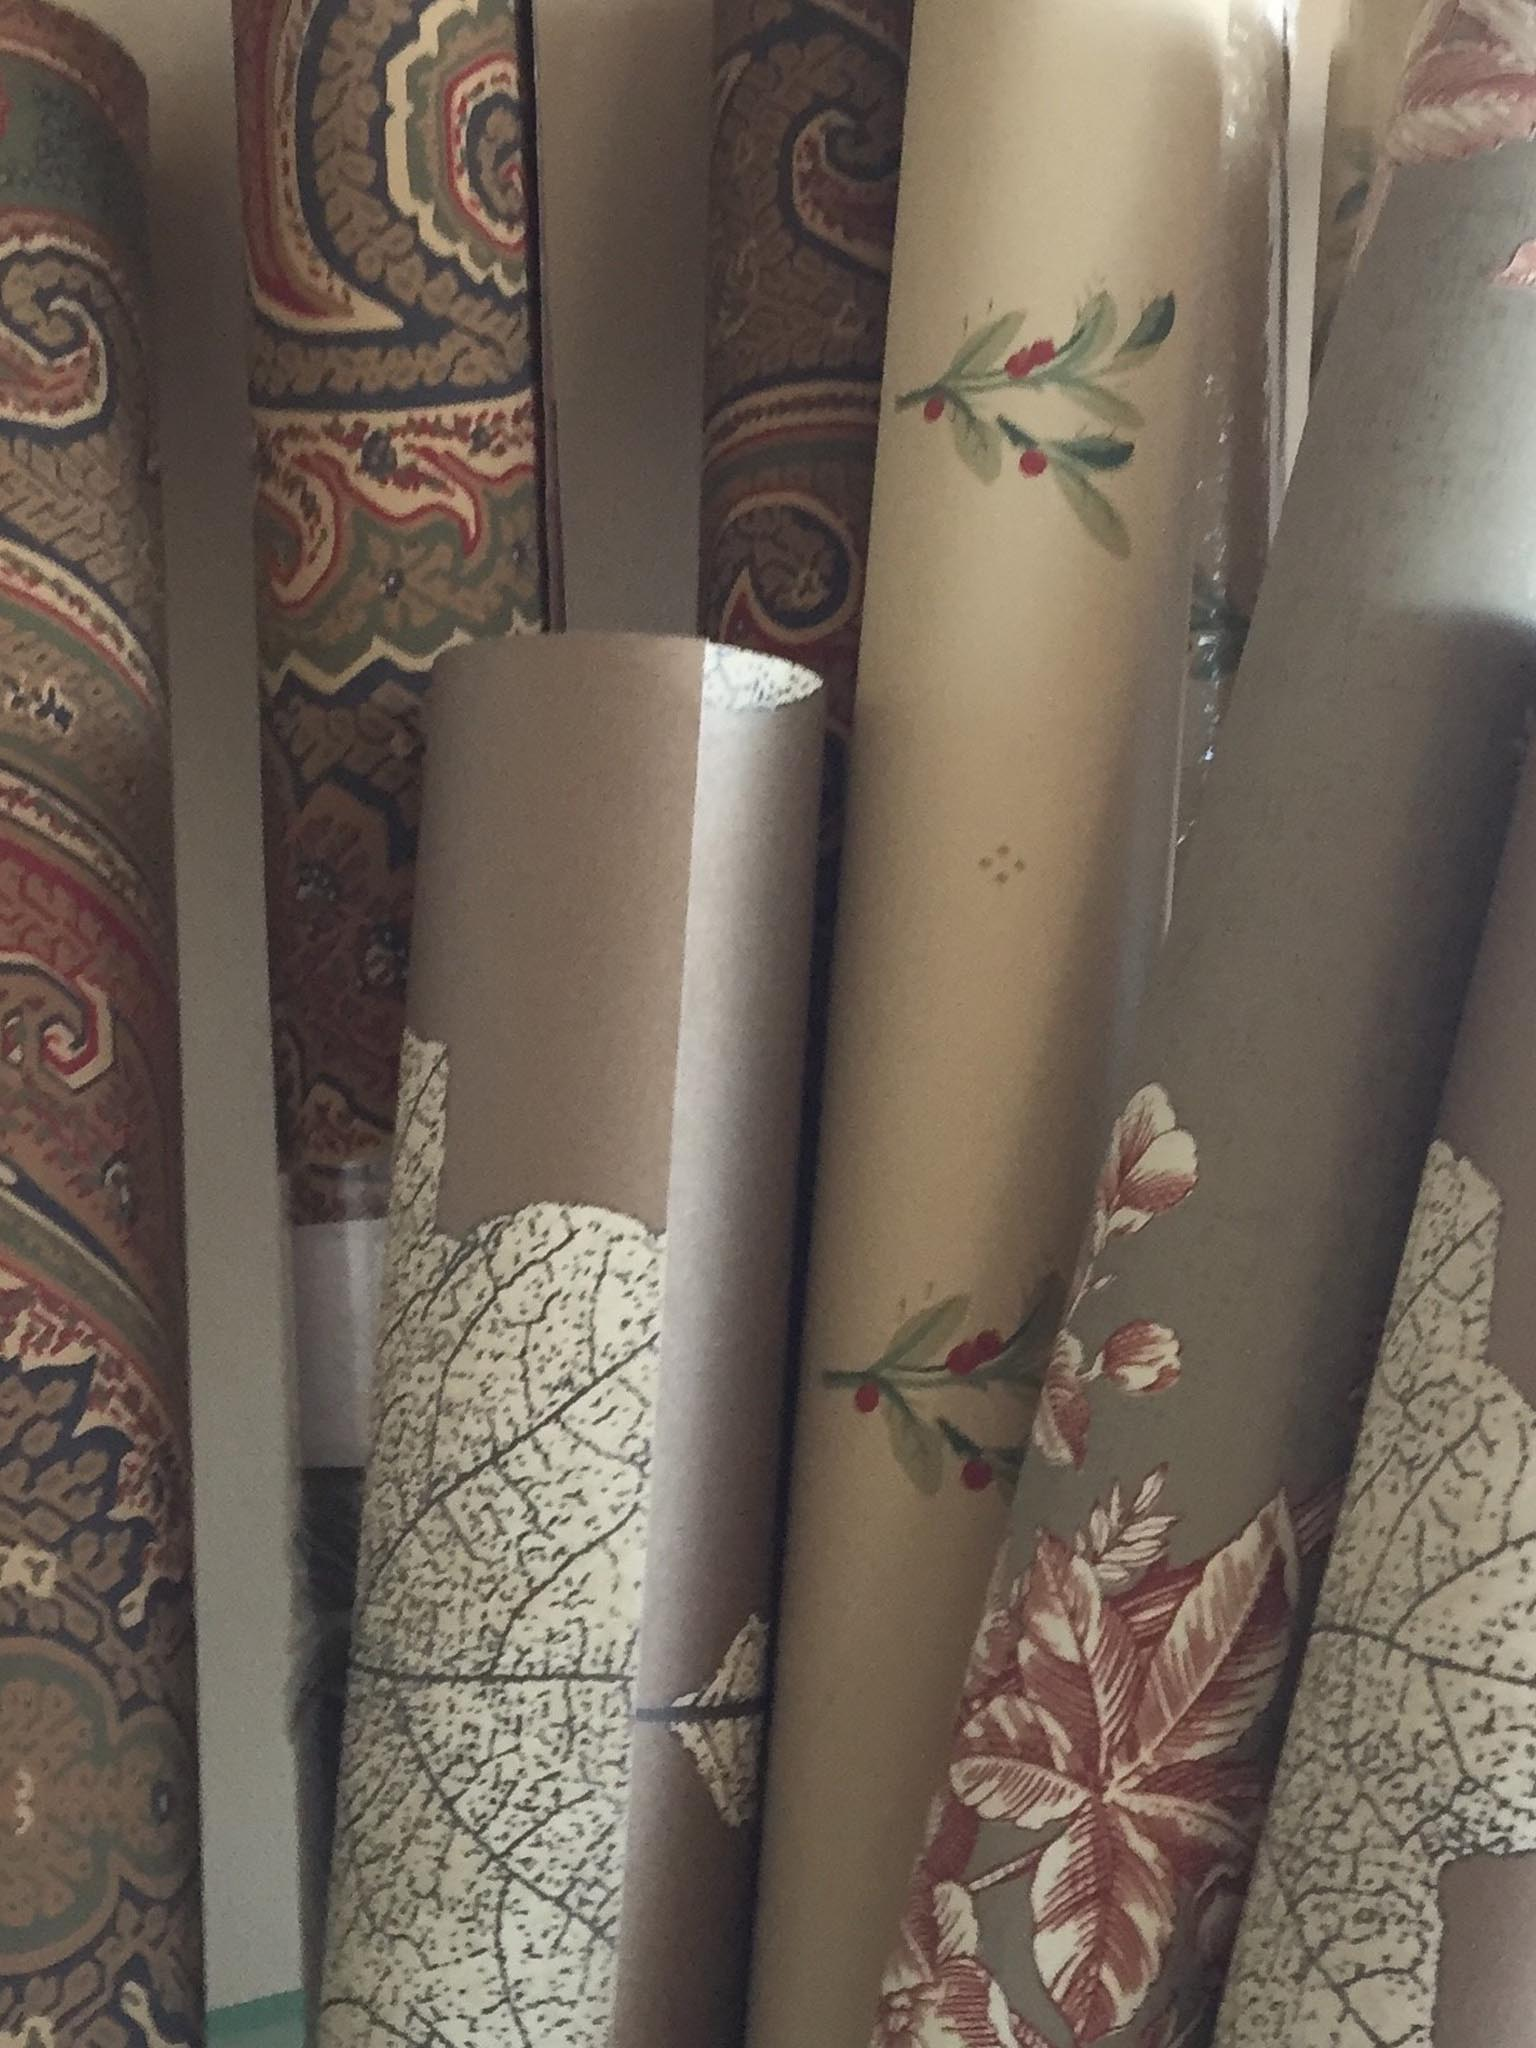 Denver Wallpaper Installation, Wallpaper Company and Painting Company